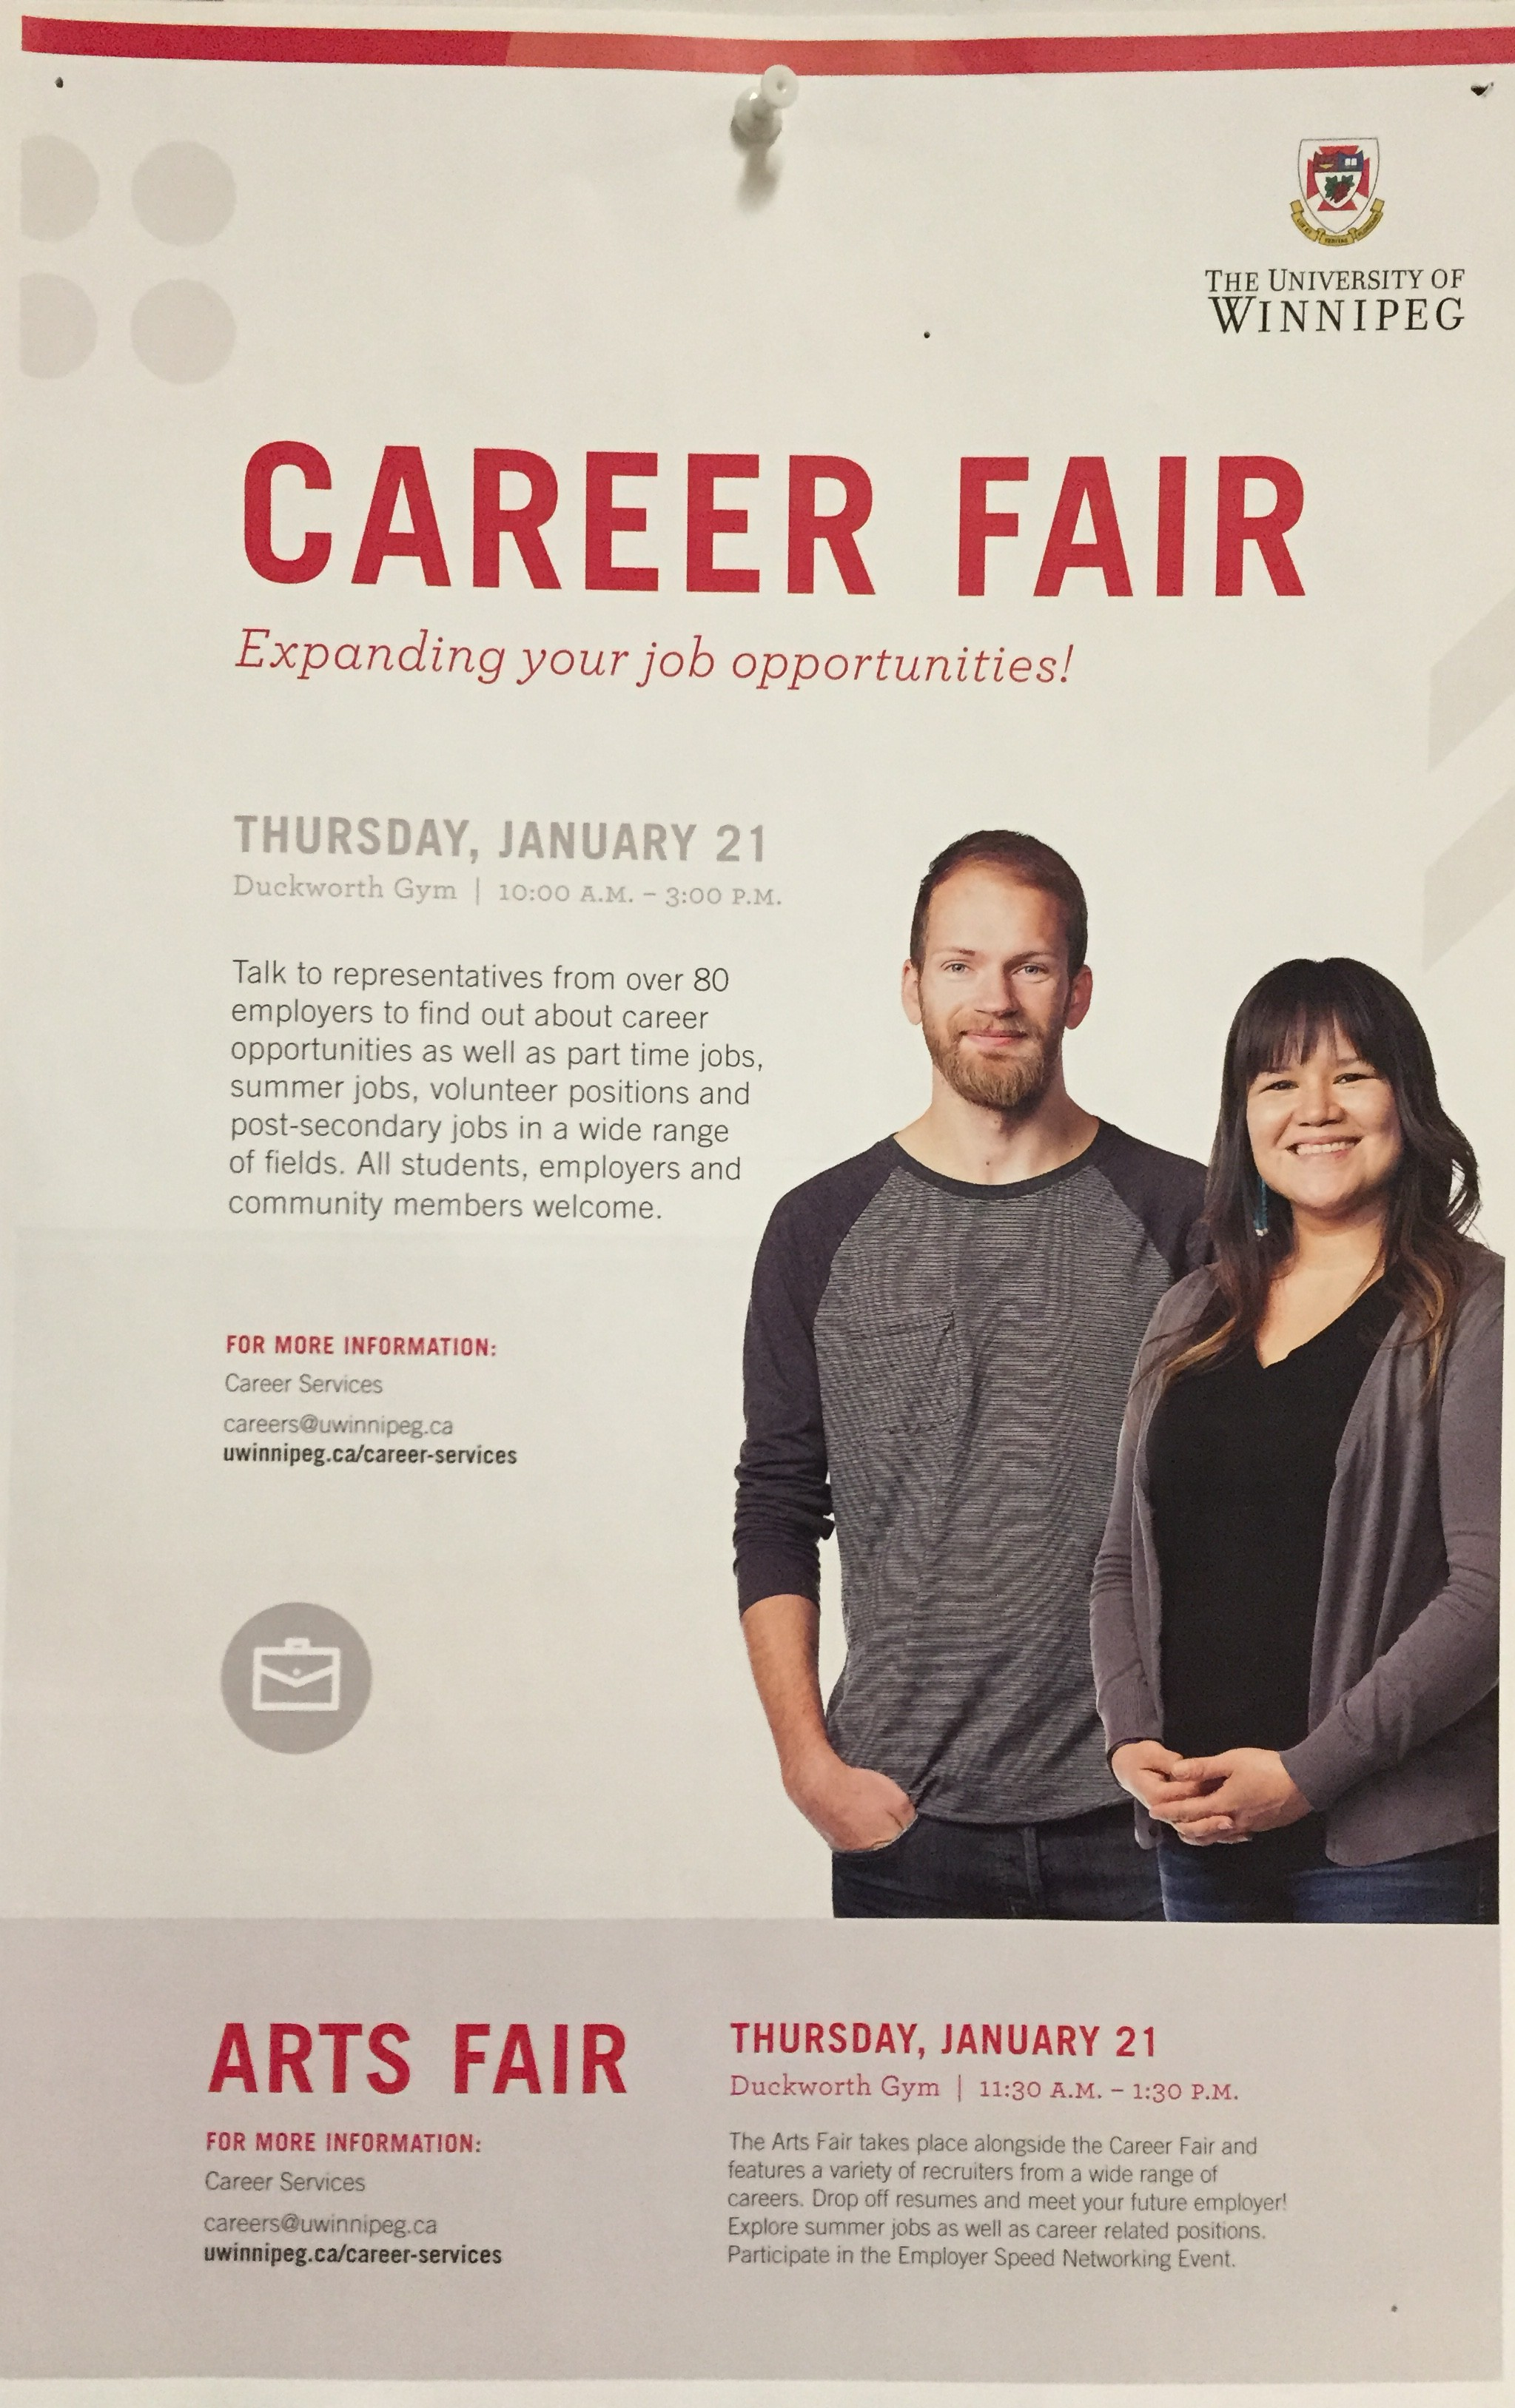 Career Fair January 21, 2016